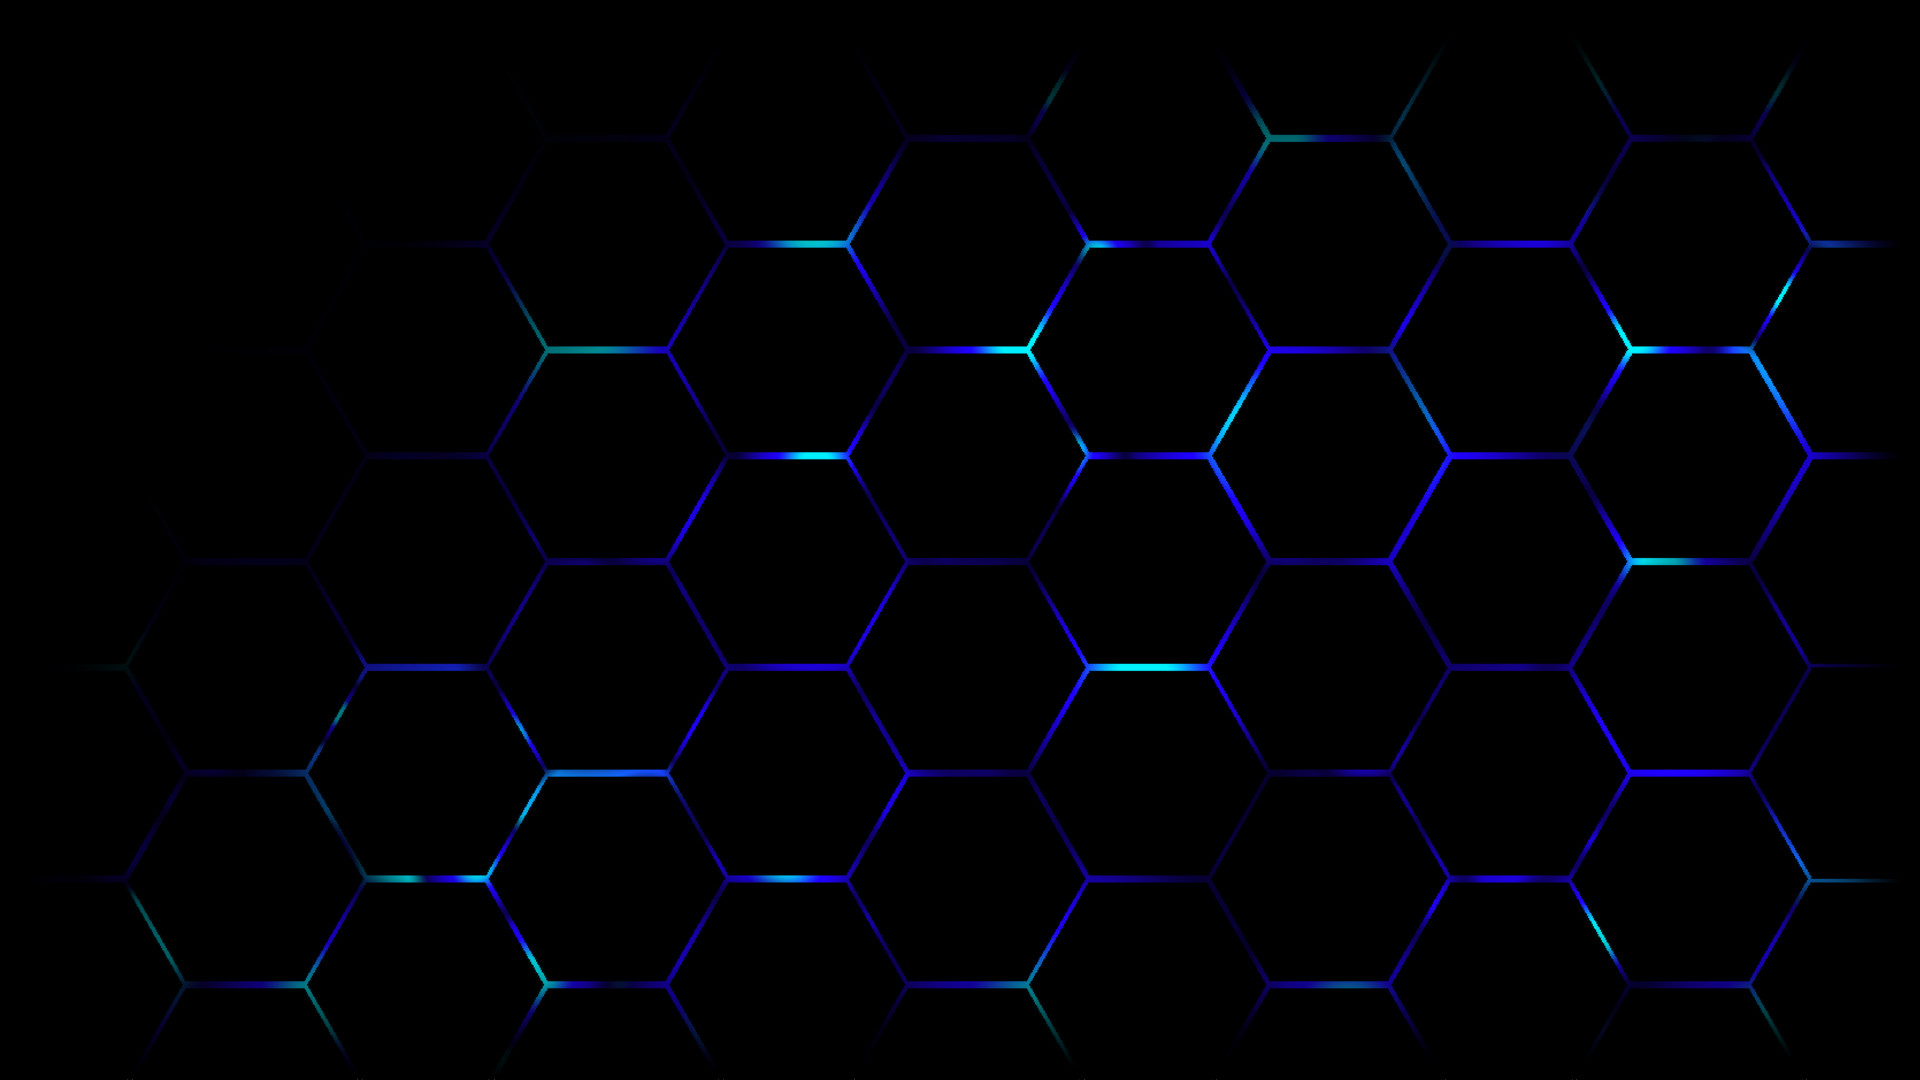 Res: 1920x1080, Blue honeycomb pattern wallpaper